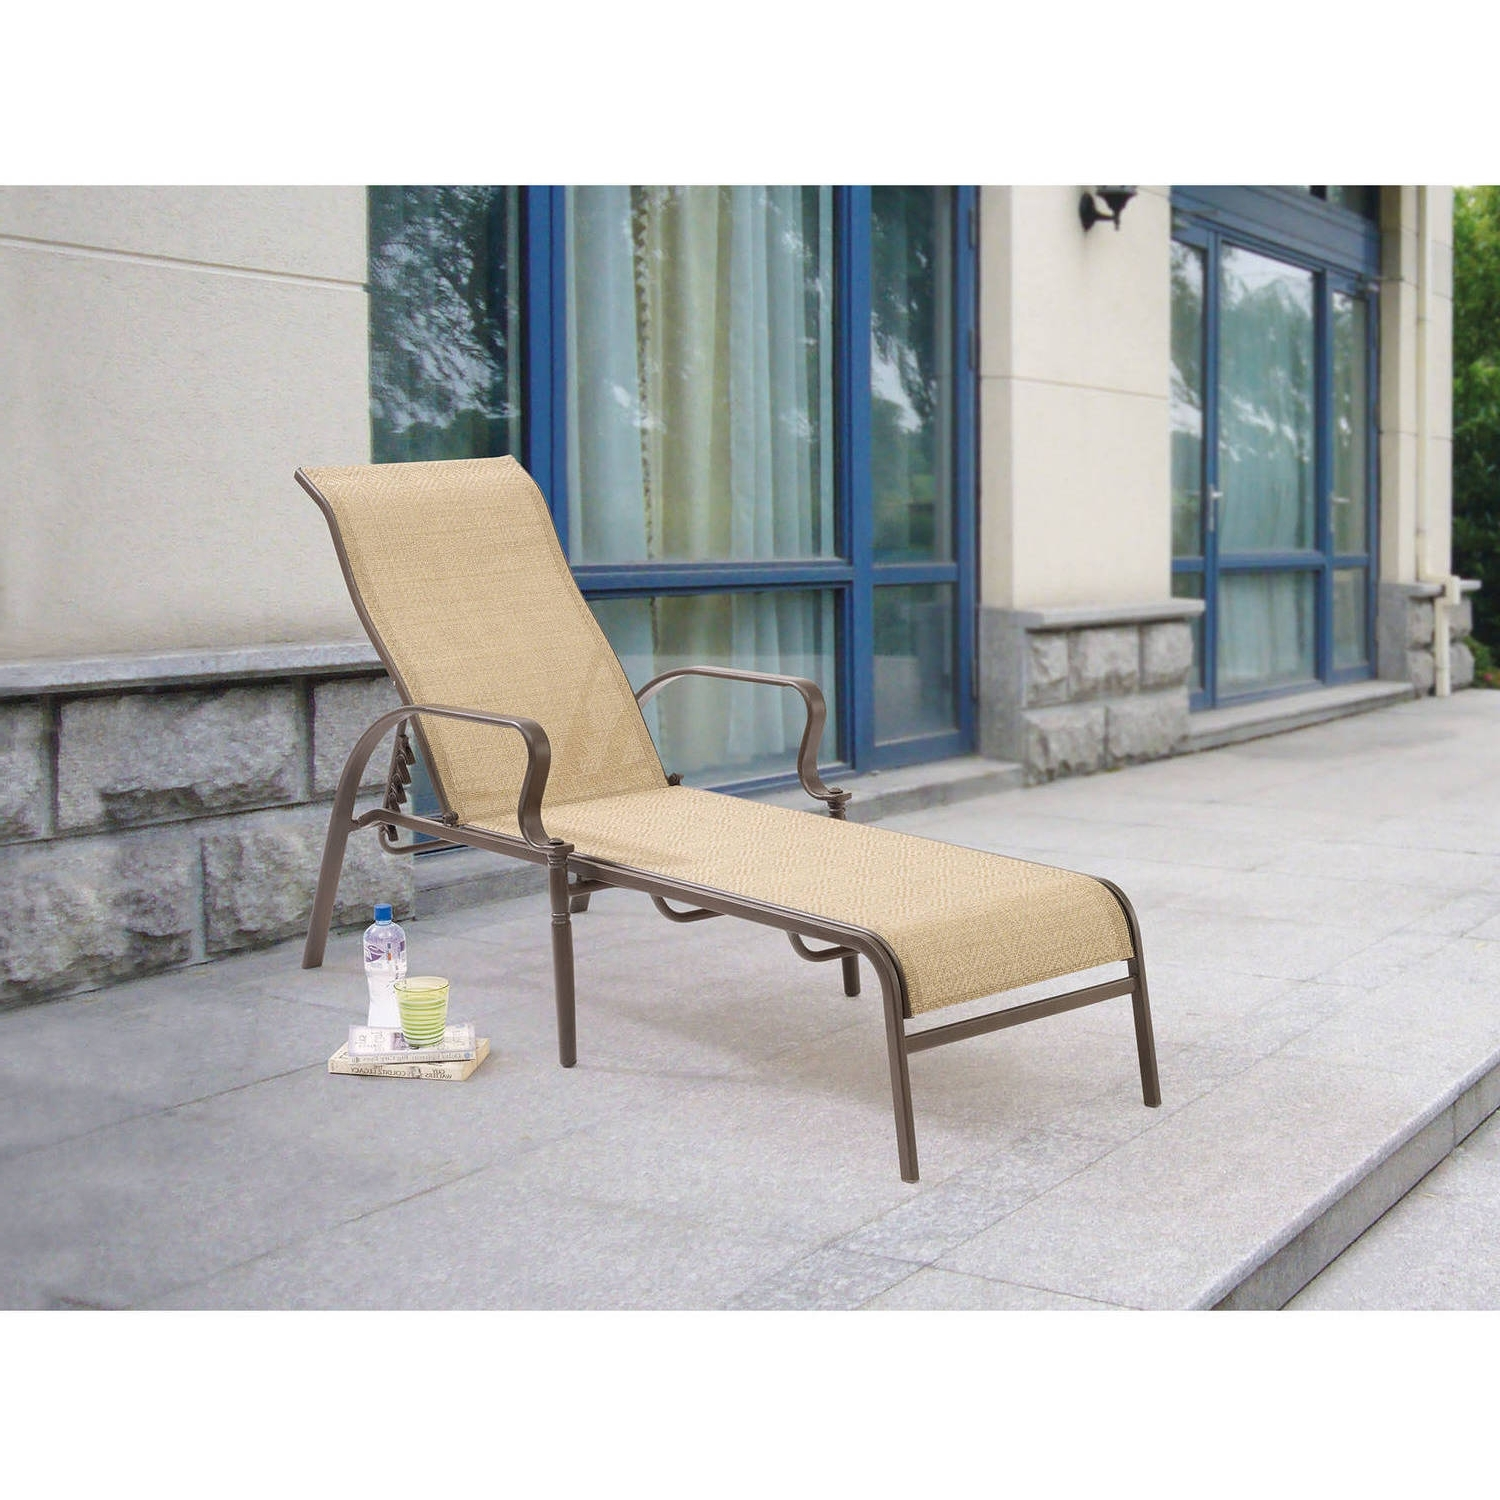 Trendy Mainstays Wesley Creek Sling Outdoor Chaise Lounge – Walmart Within Chaise Lounge Chairs At Walmart (View 14 of 15)